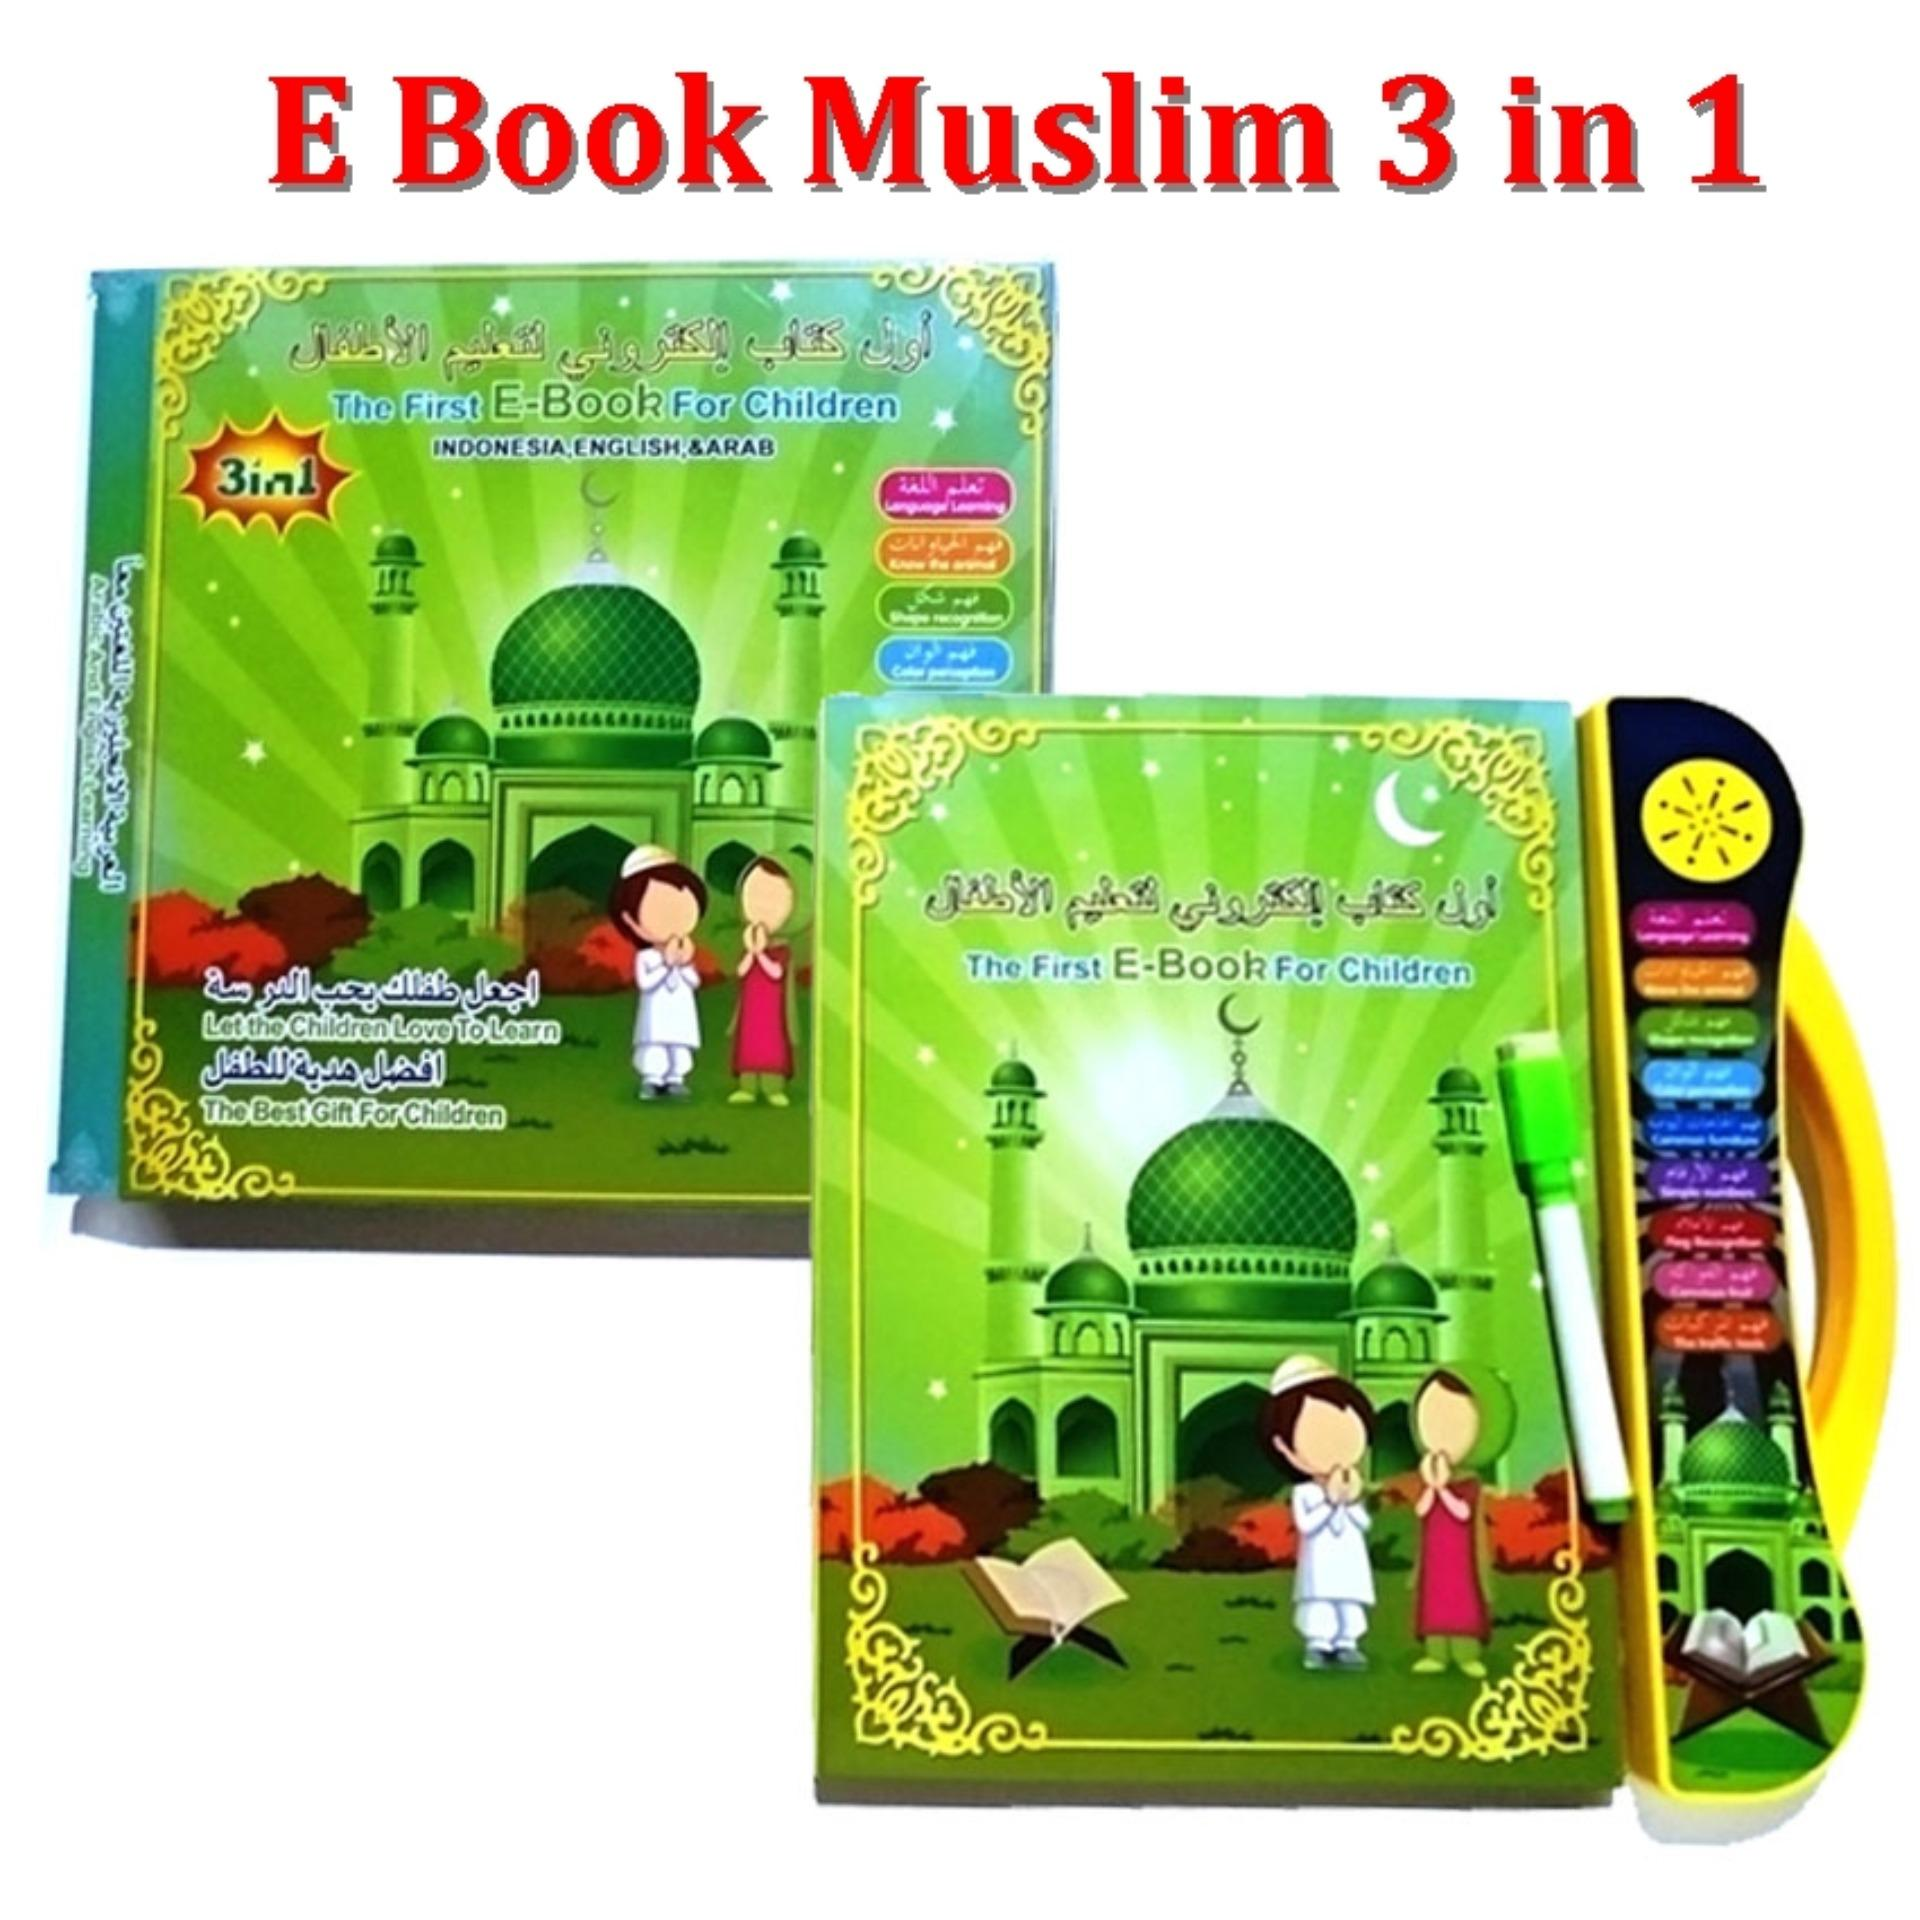 JNO E Book Muslim 3 in 1 / Buku dan Tablet Berbunyi